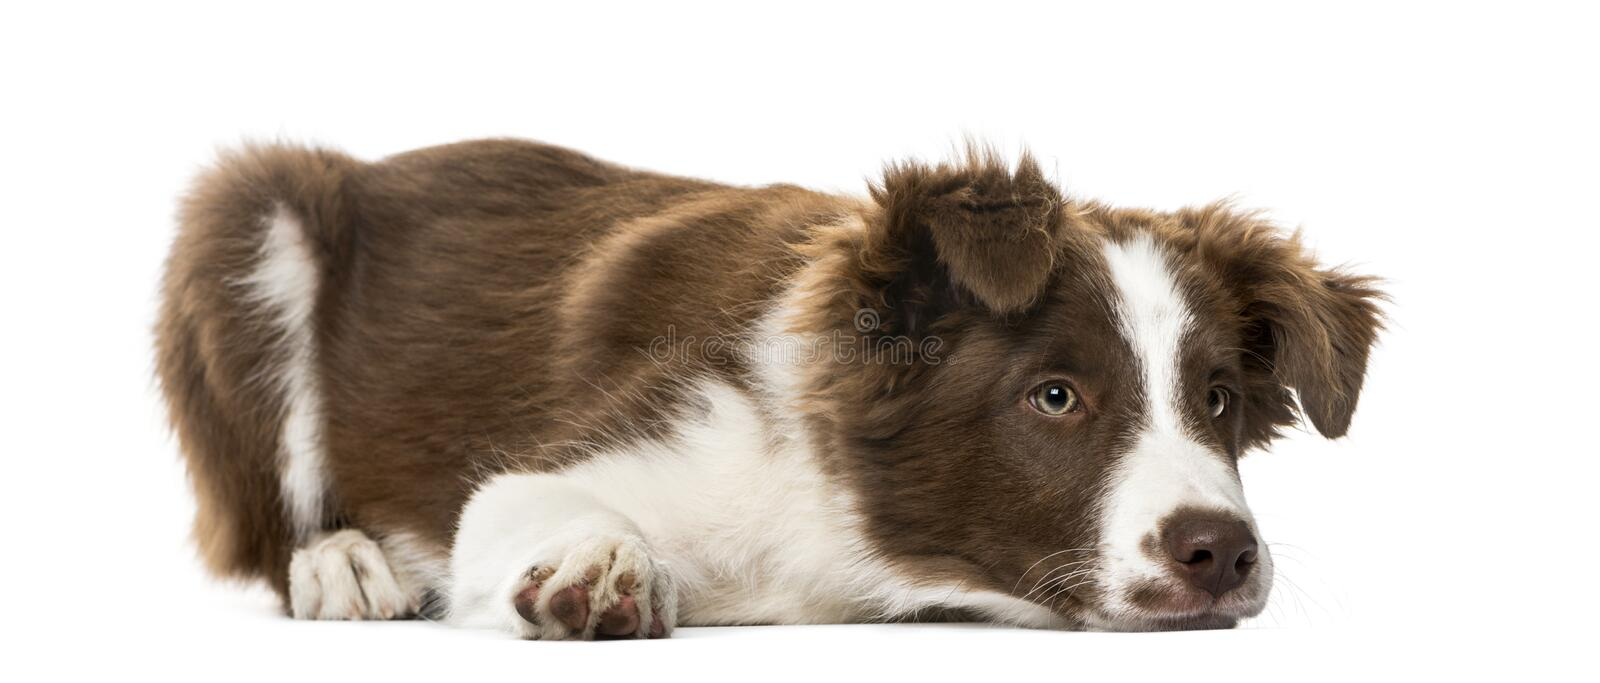 Puppy Border Collie lying, ,15 weeks old. Puppy Border Collie lying, on white,15 weeks old royalty free stock image